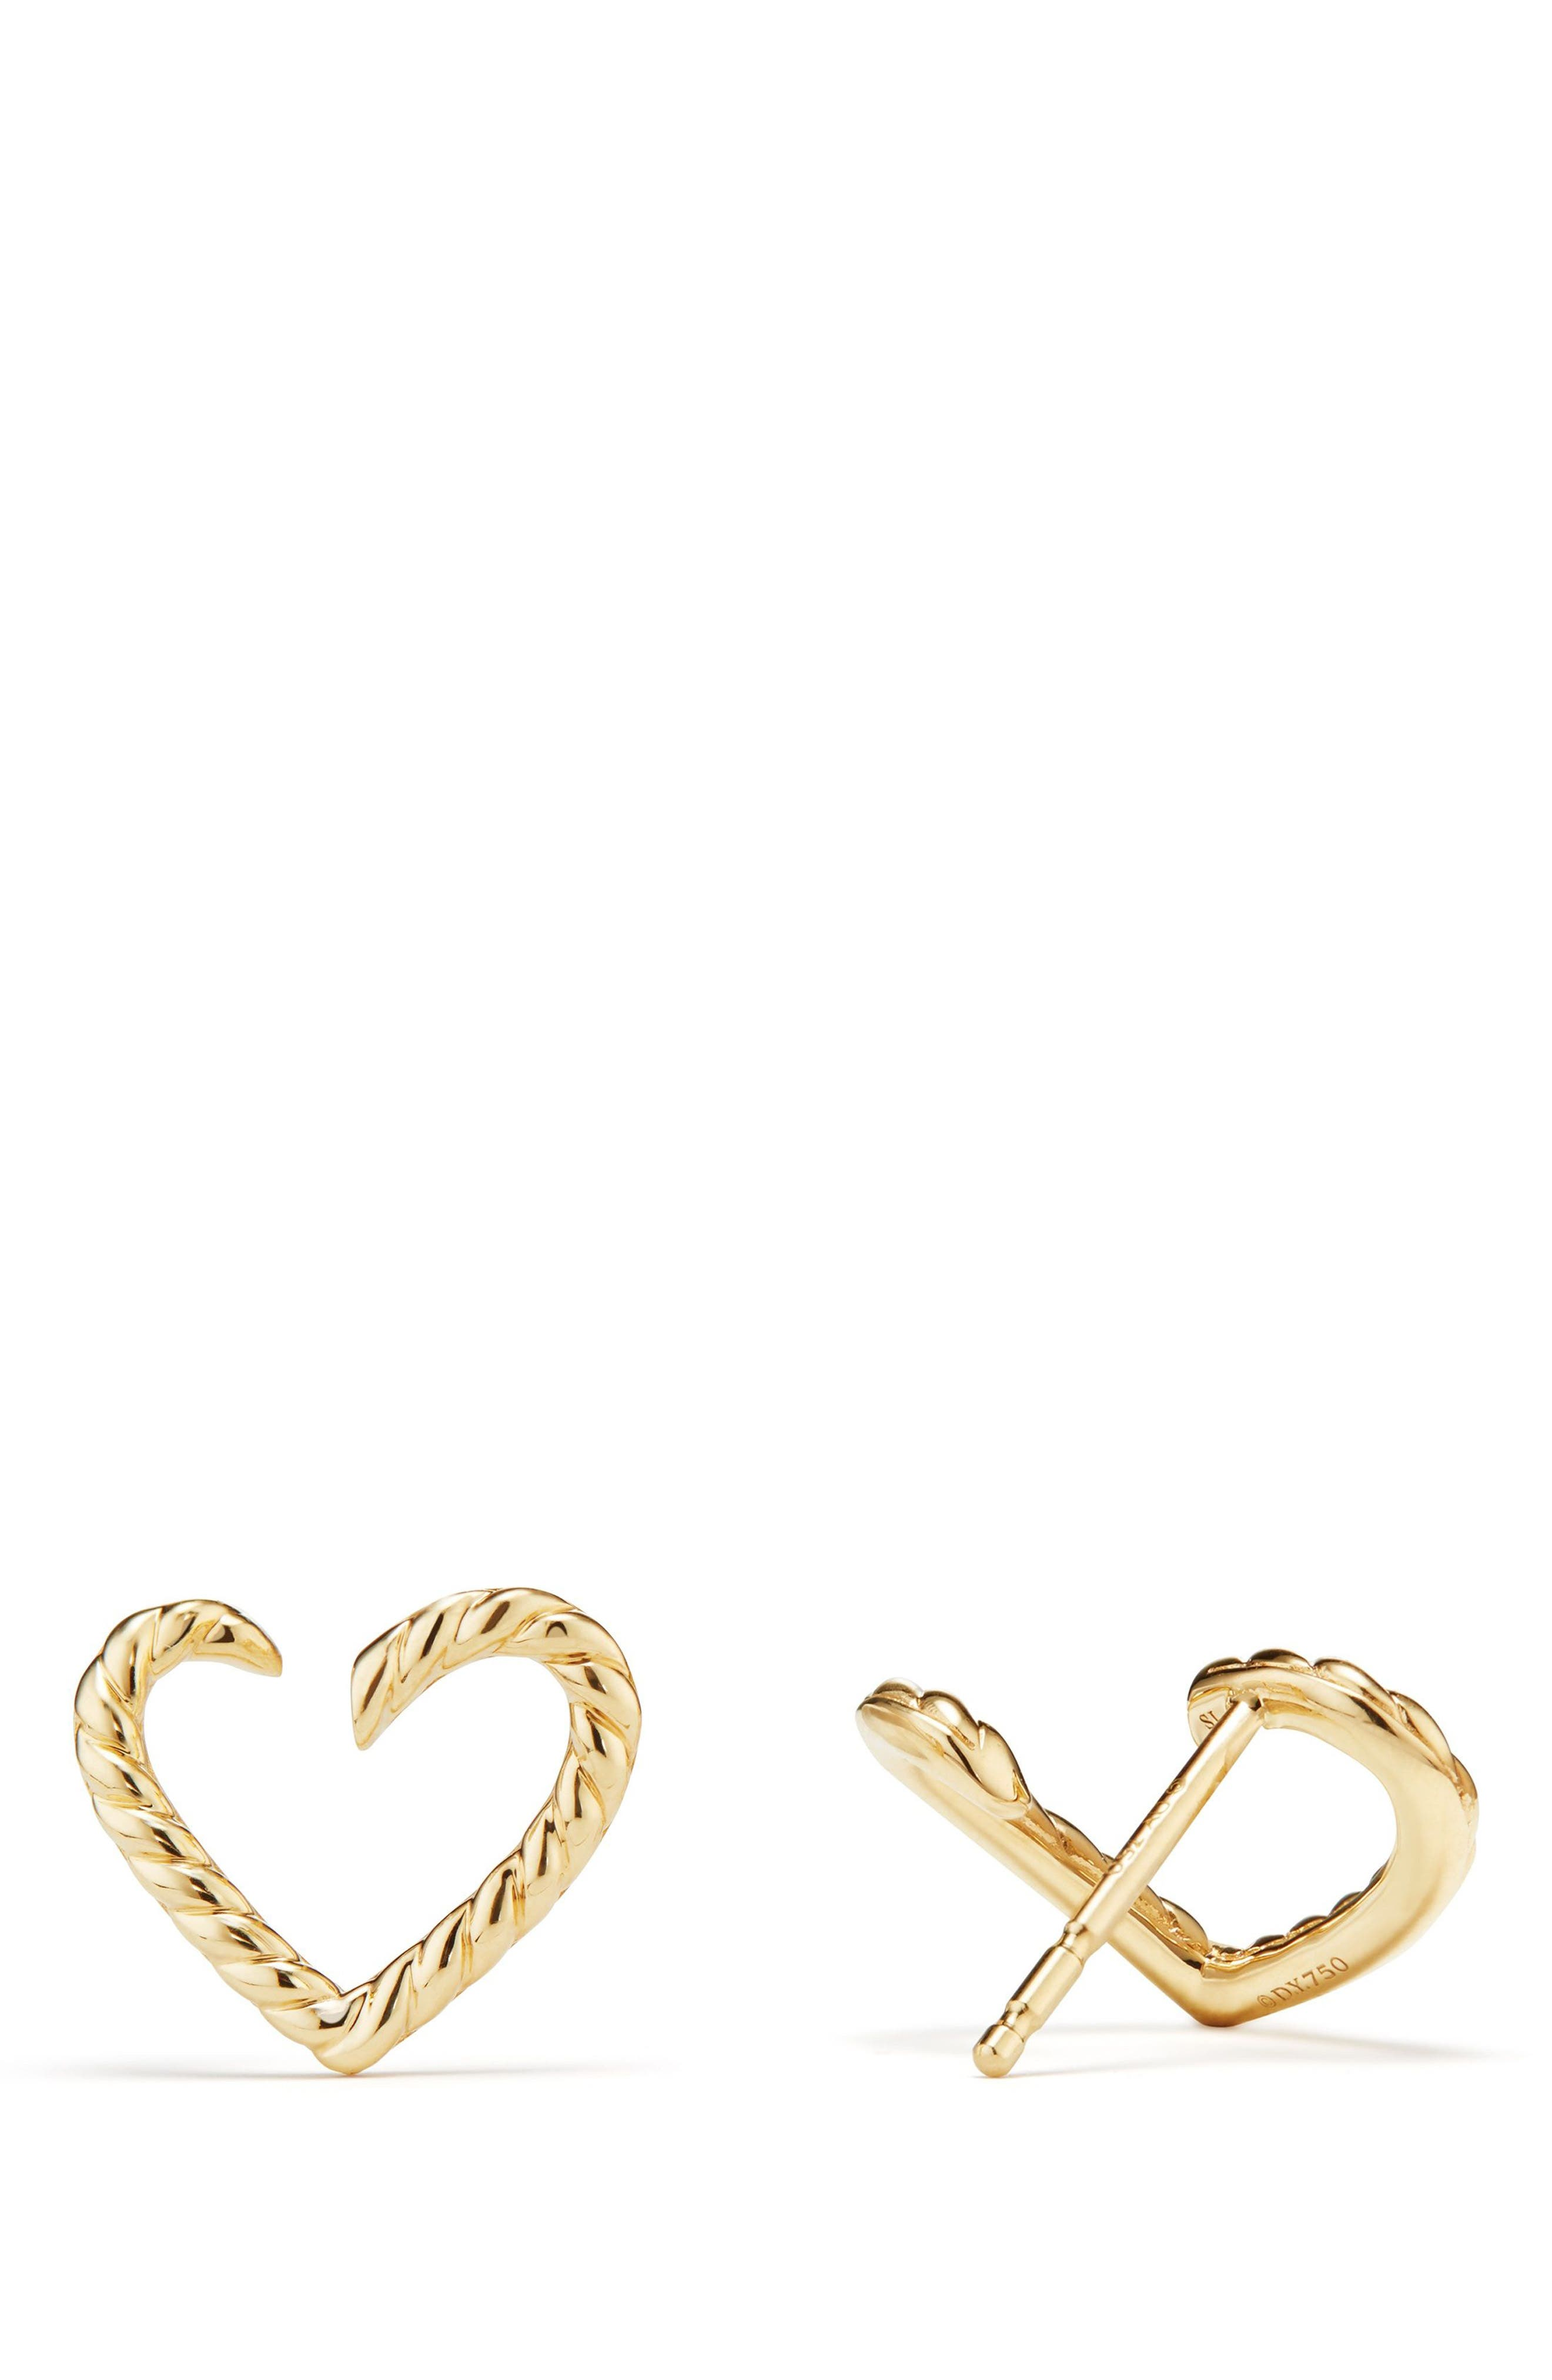 Cable Heart Earring in 18K Gold,                             Alternate thumbnail 2, color,                             GOLD